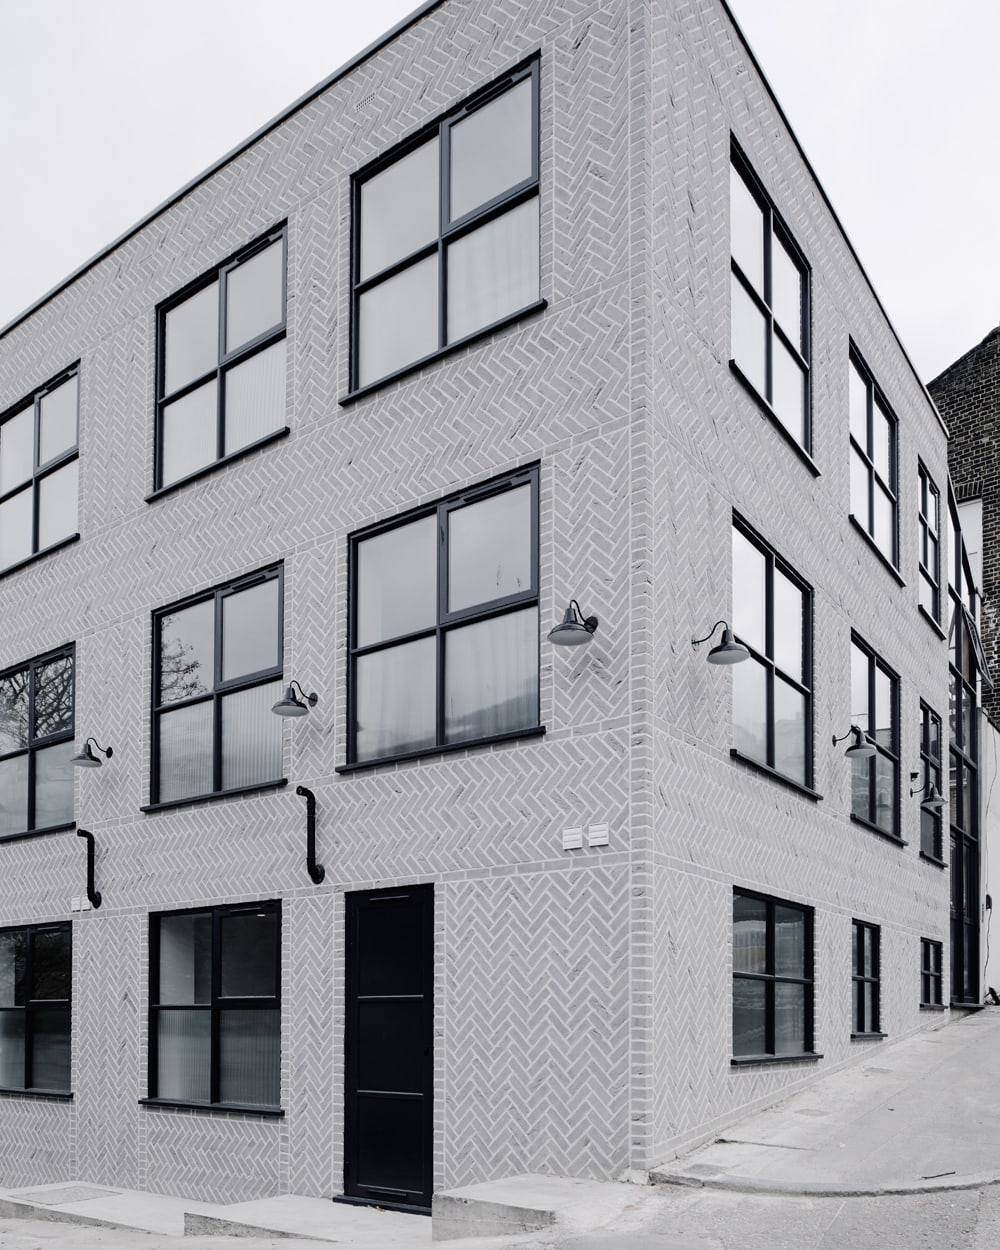 New Cross Lofts by Chan and Eayrs